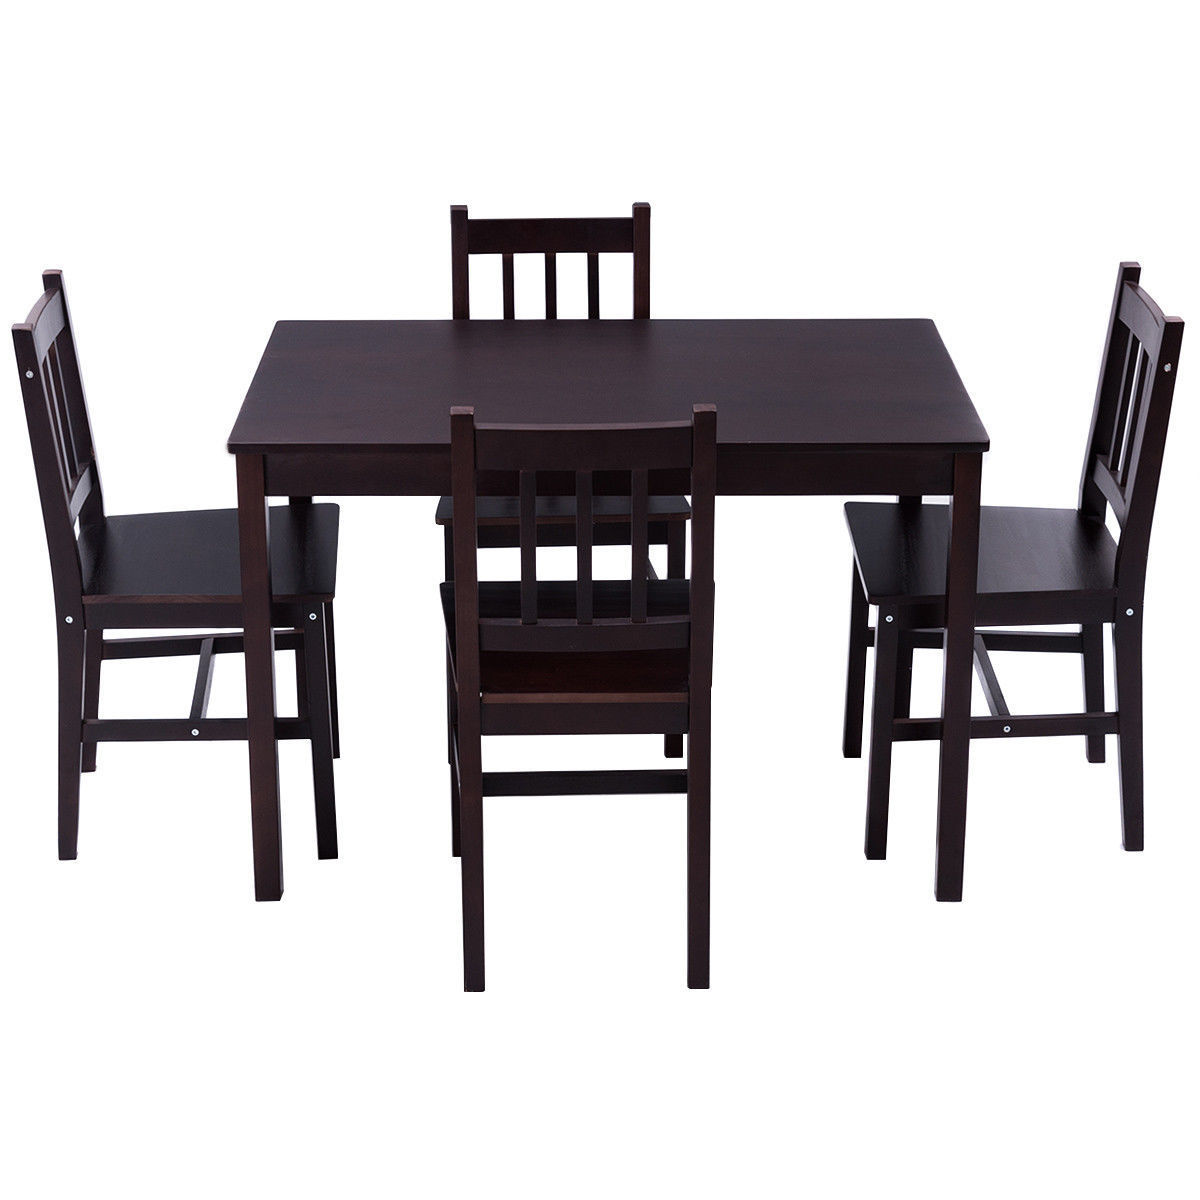 Ordinaire GHP 5 Pcs Brown Solid Pine Wood Home Kitchen Dining Table And Chairs  Furniture Set